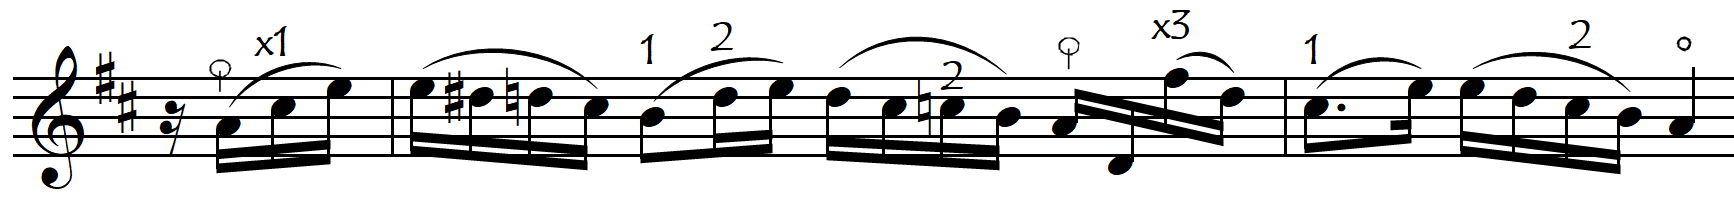 haydn D fixed thumb or not 2